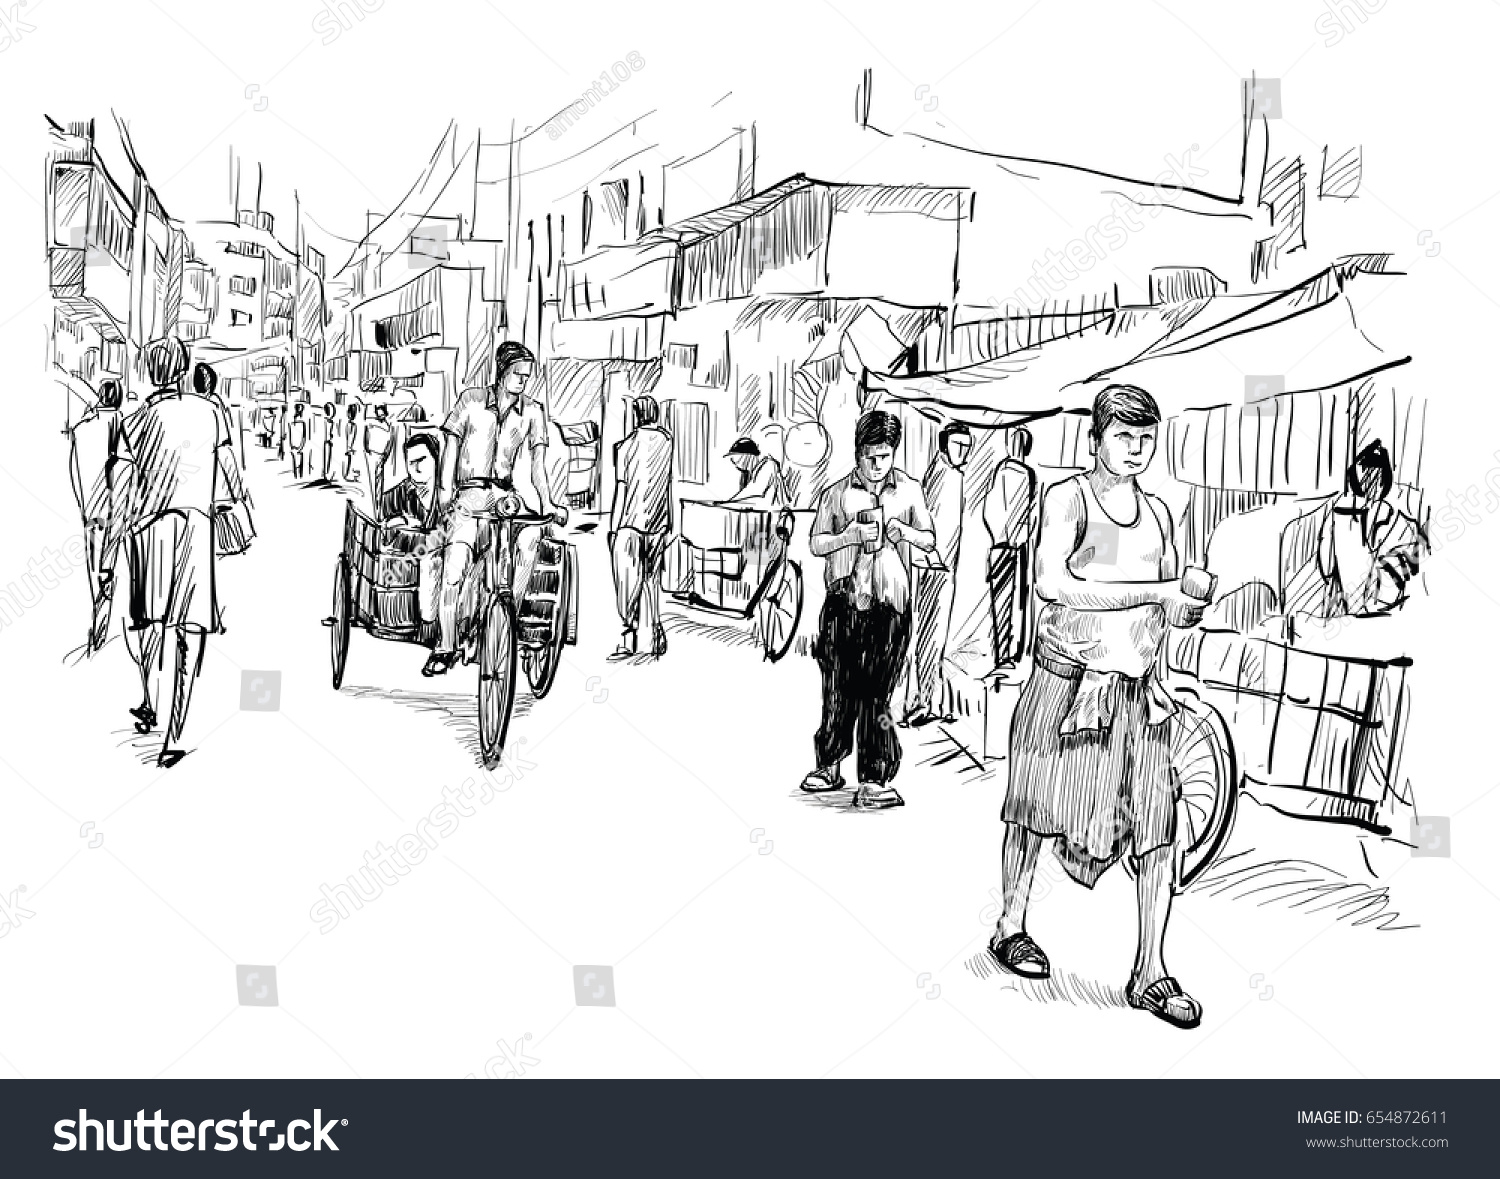 Indian Marketplace Drawing Sketch Cityscape India...